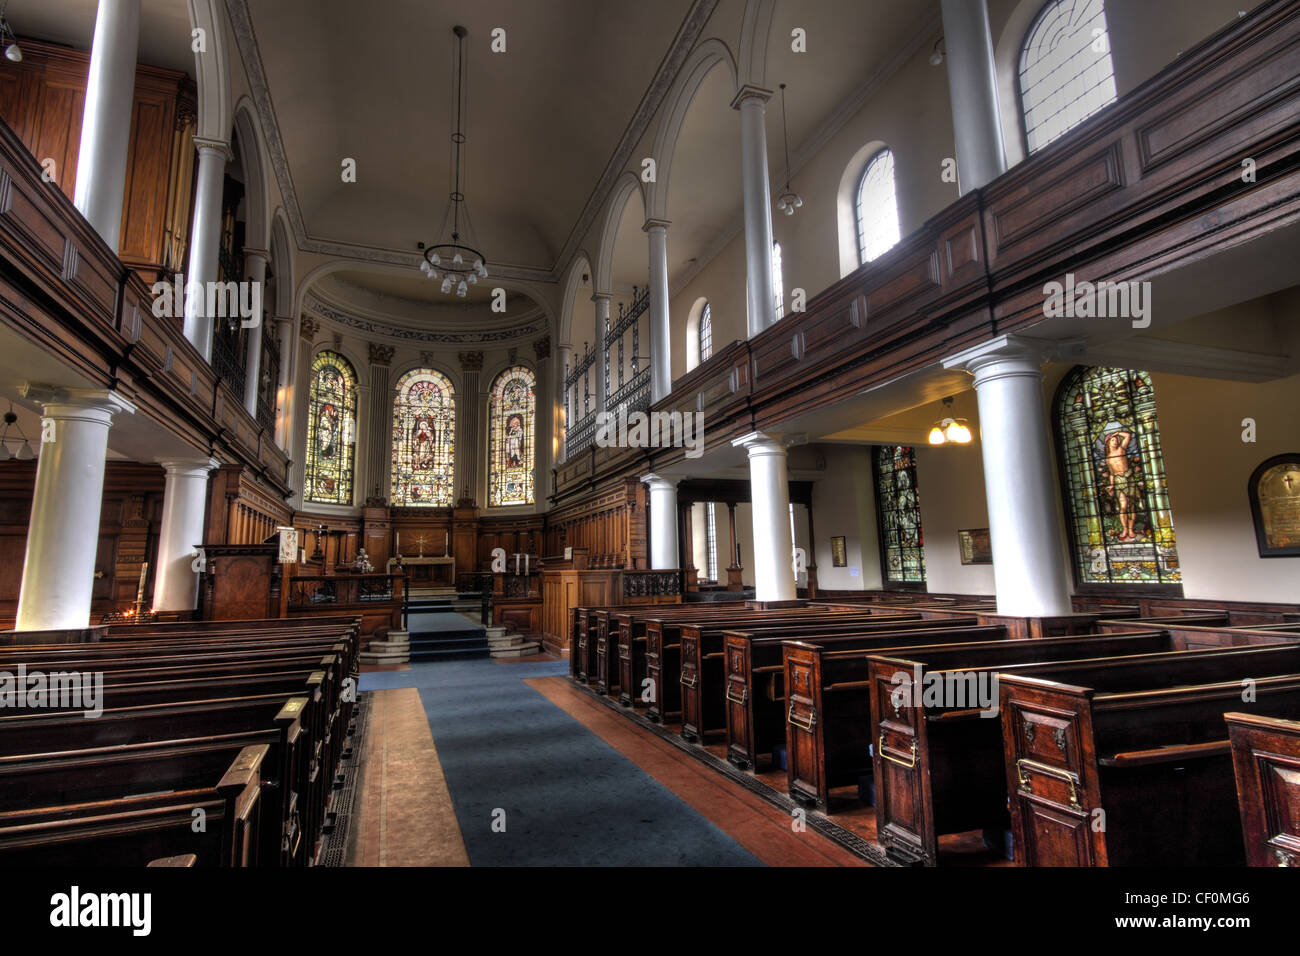 St Anns Church Manchester view down aisle - Stock Image